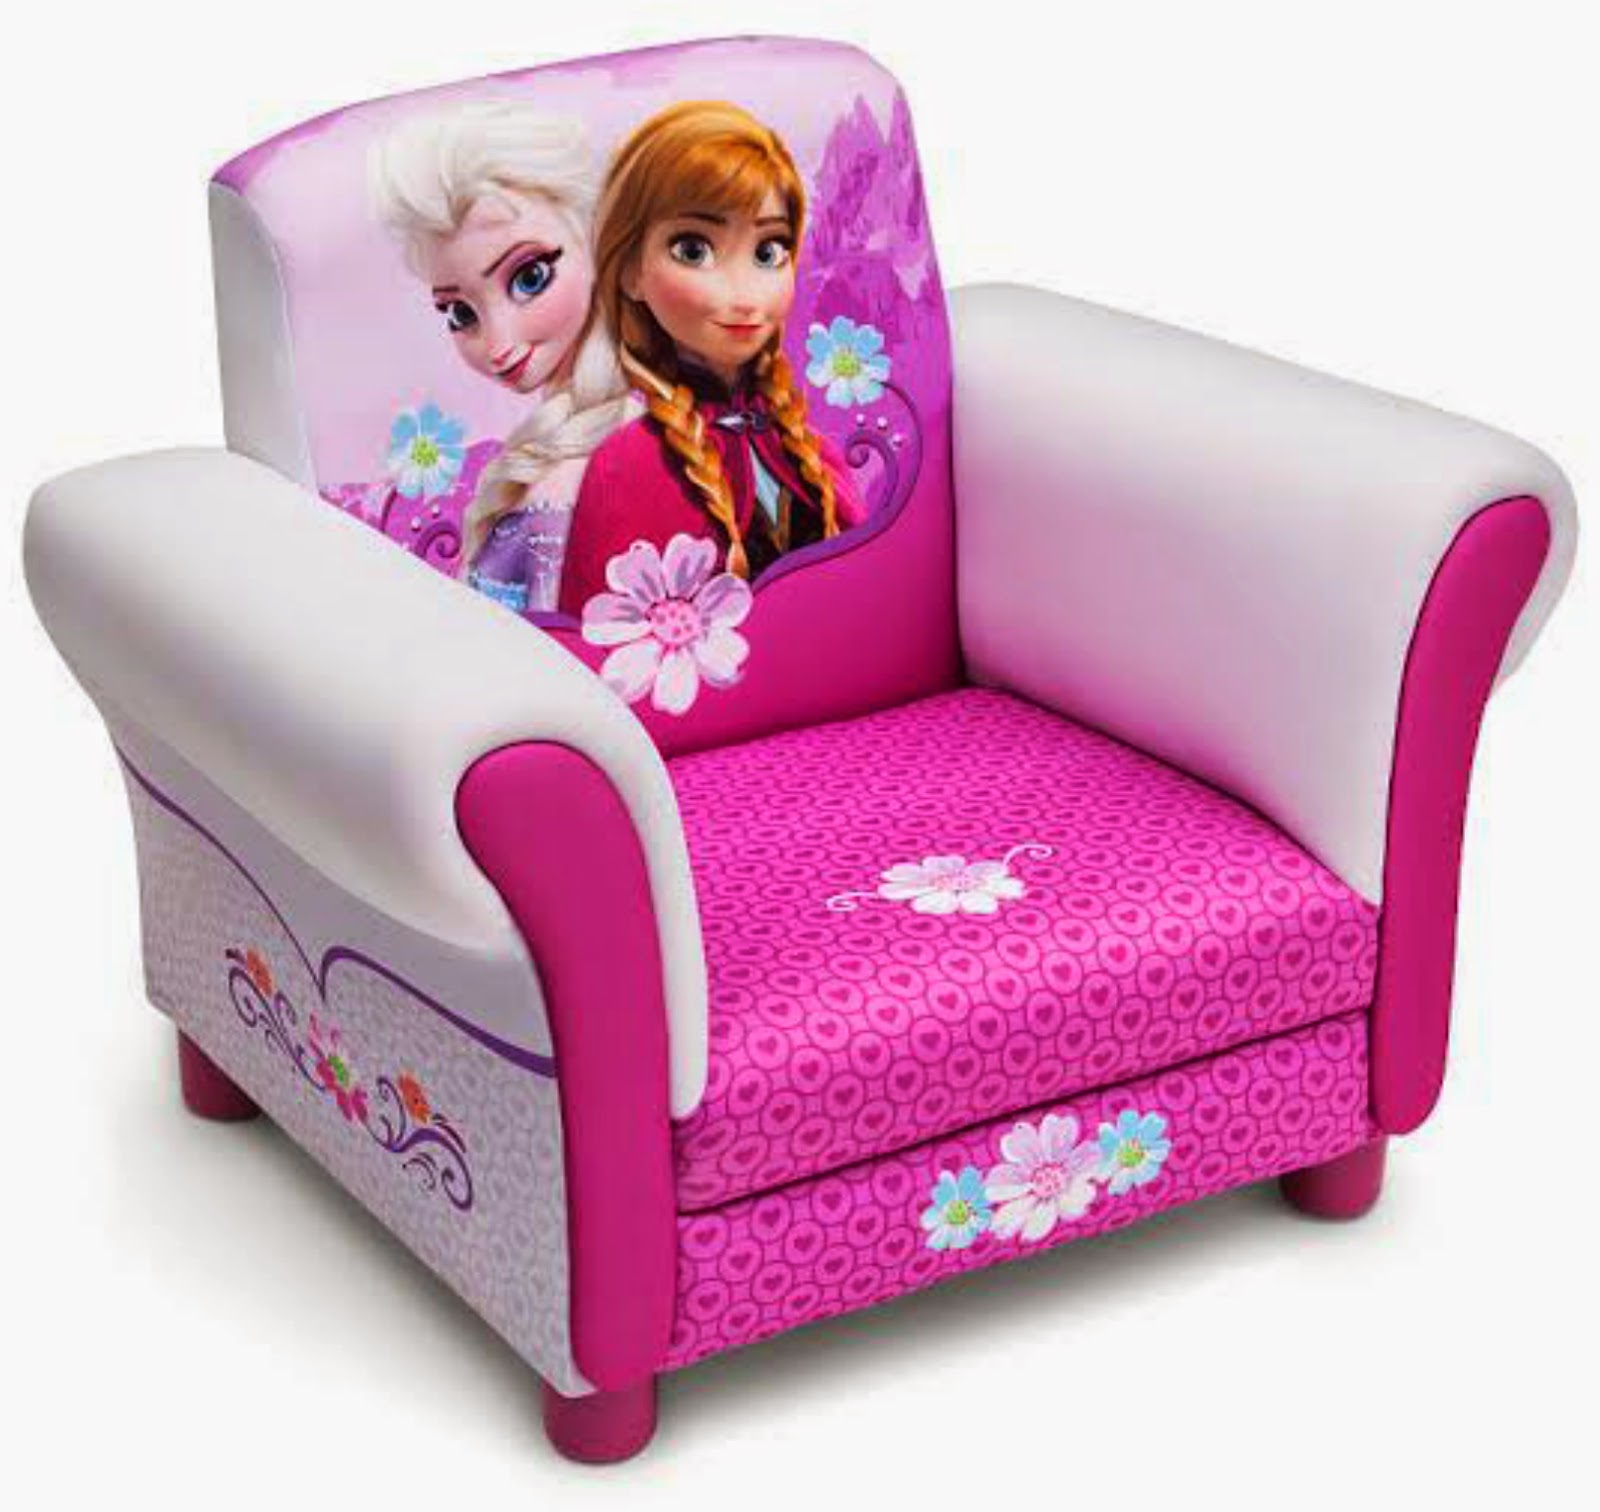 Disneyu0027s Frozen Upholstered Chair A cool chair fit for a (snow) queen this Frozen Upholstered Chair from Delta Children will cast a stylish spell on your ...  sc 1 st  Sparkle Me Pink & Sparkle Me Pink: FROZEN Canopy Bed u0026 Chair GIVEAWAY ! Ends 12/20